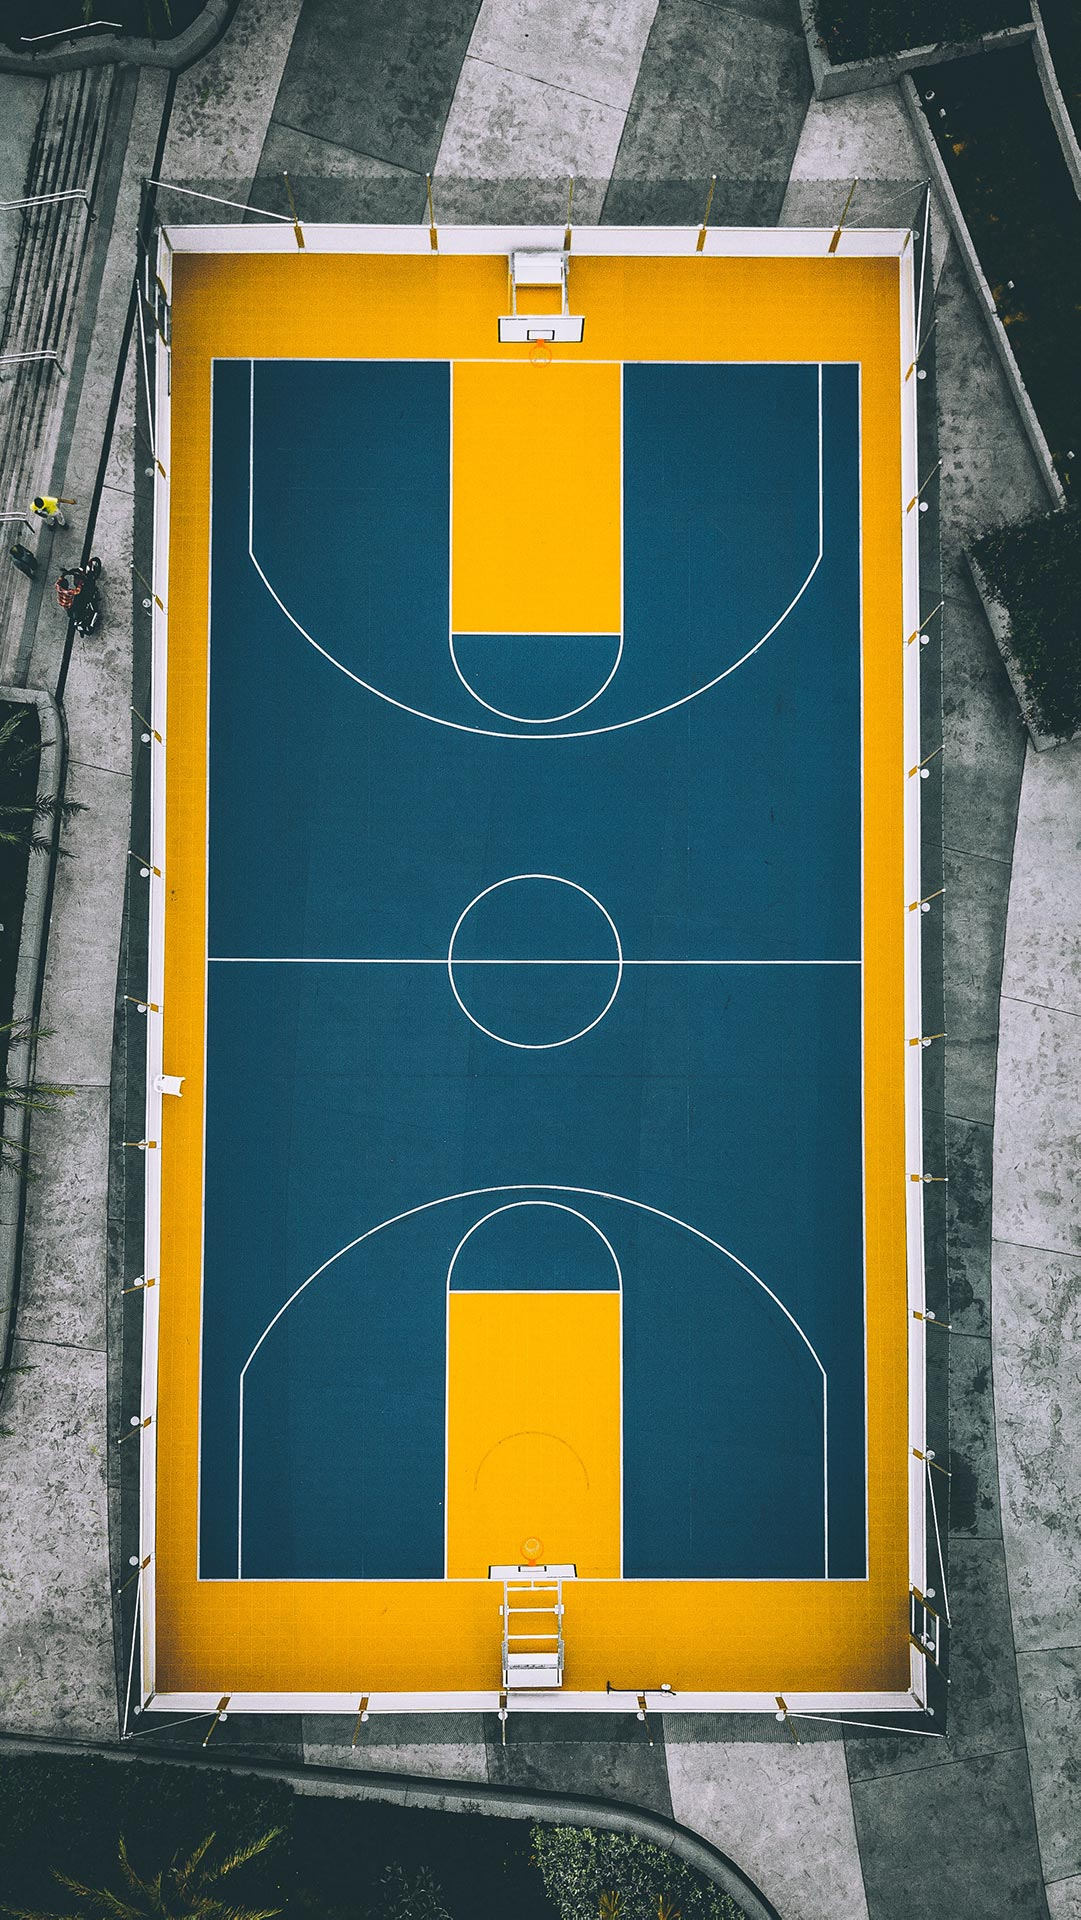 aerial view of park basketball court